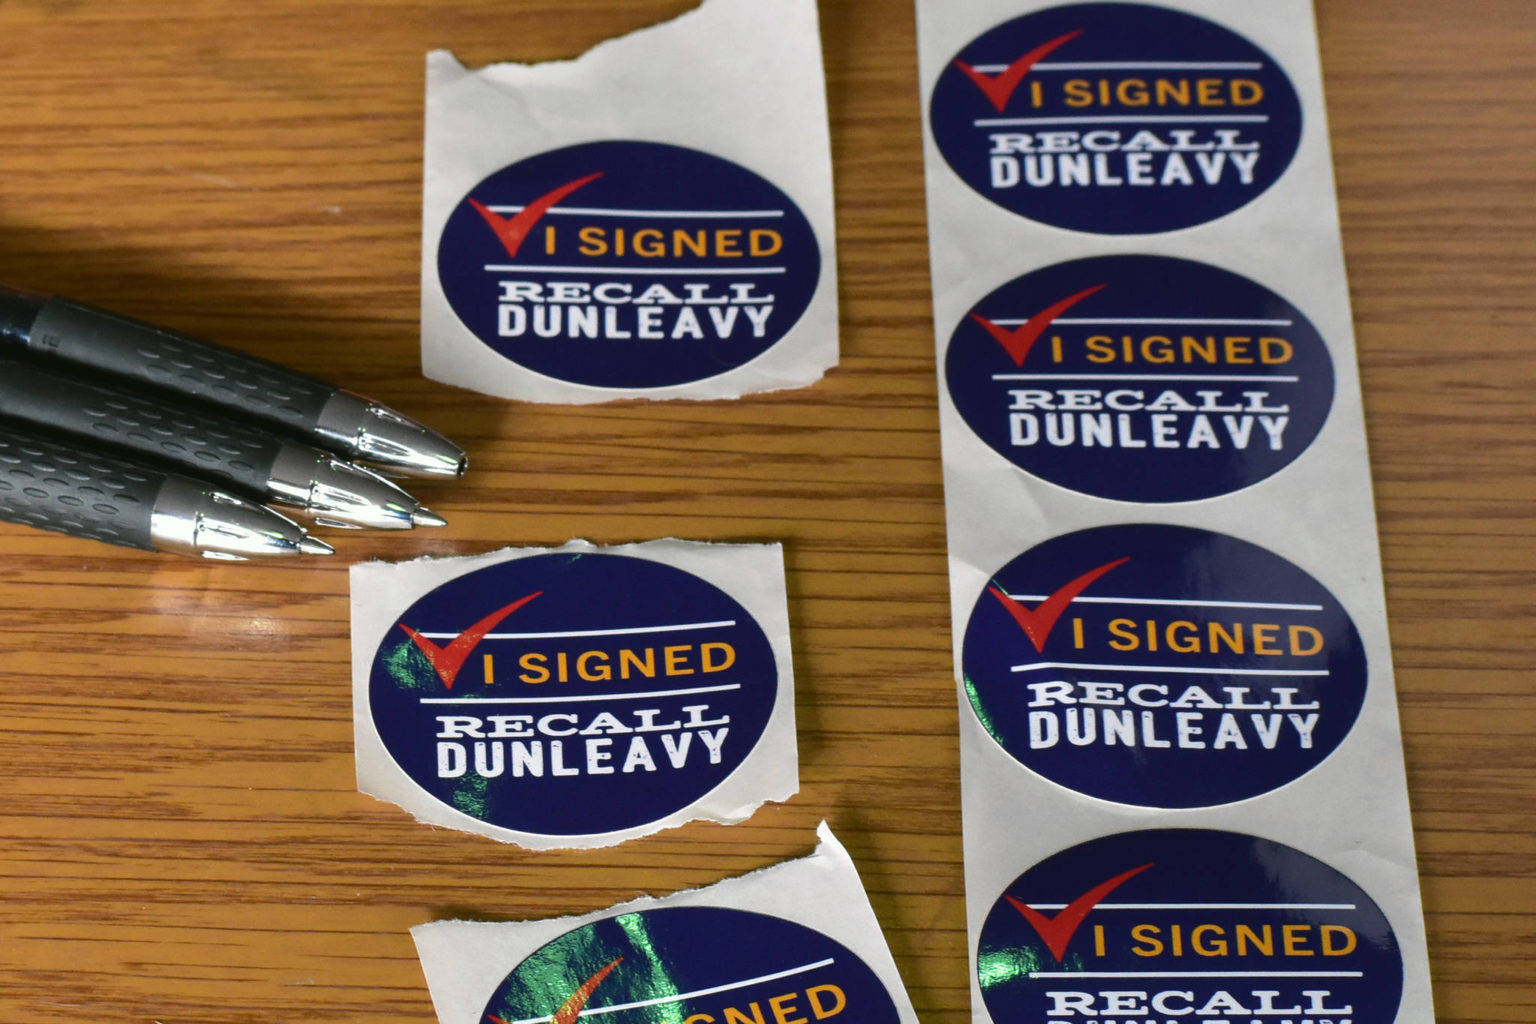 Juneauites gathered signatures to recall Gov. Mike Dunleavy in late February. (Peter Segall | Juneau Empire)